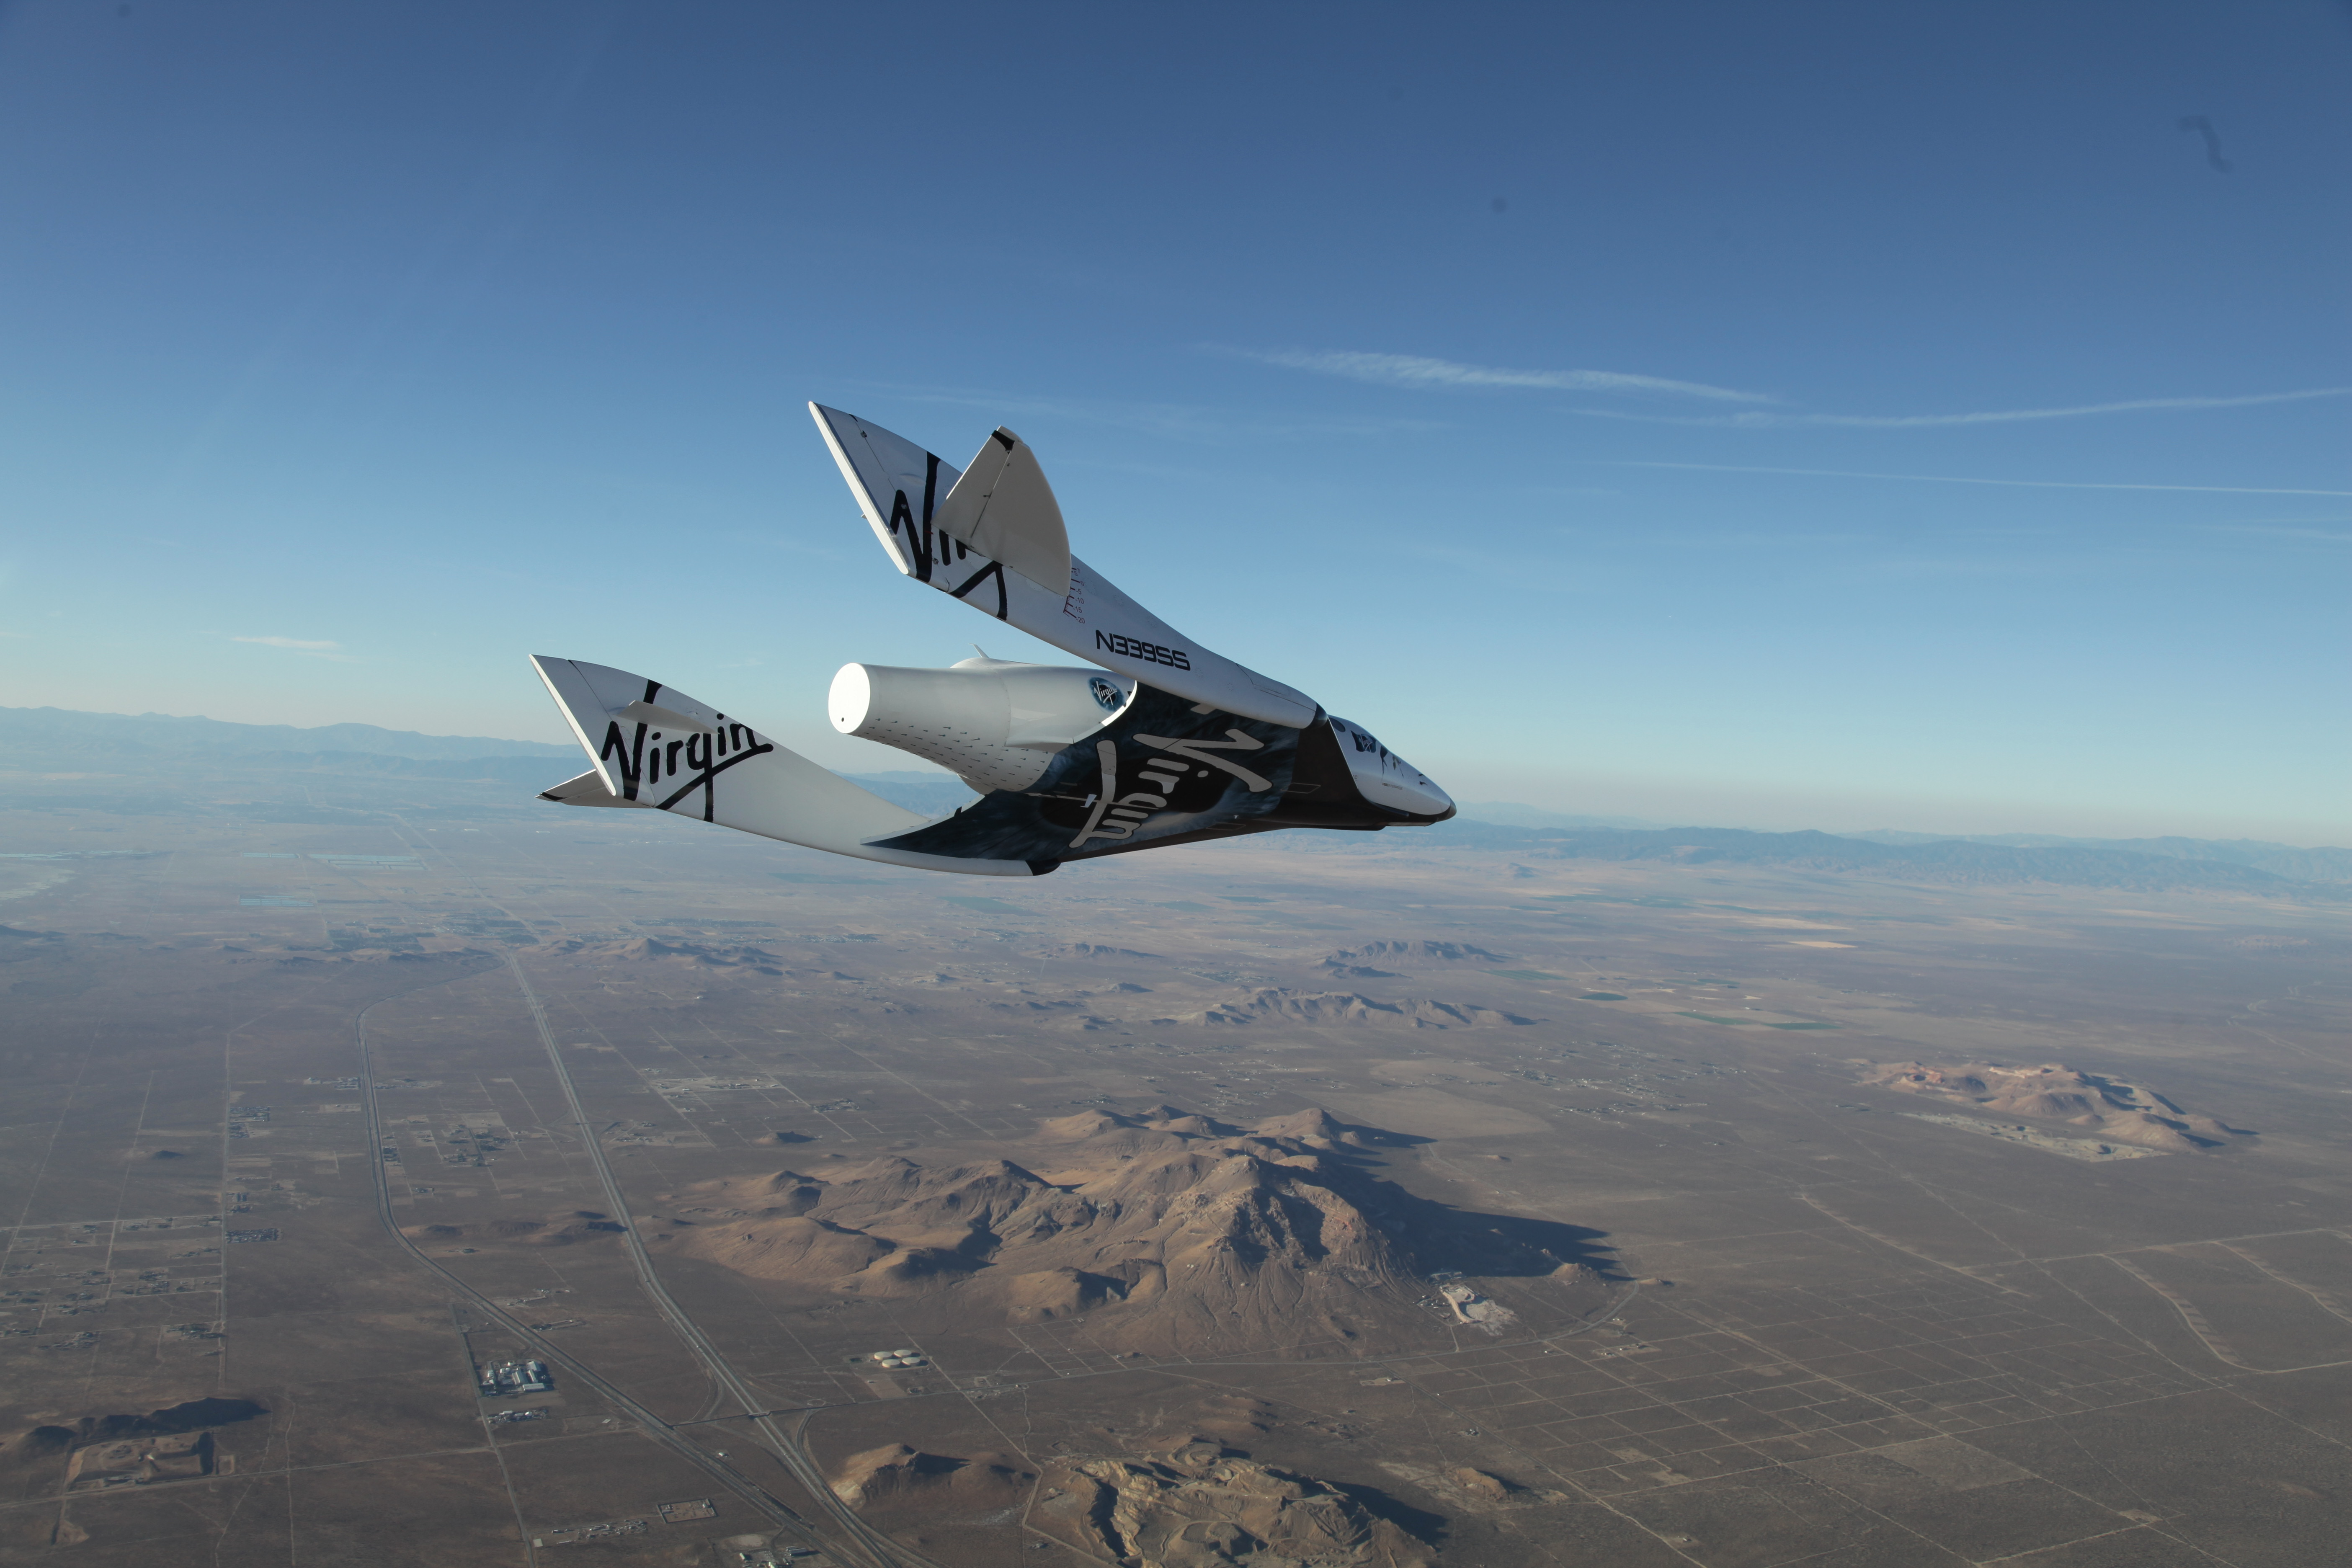 The first SpaceShipTwo during a glide flight over the Mojave desert.